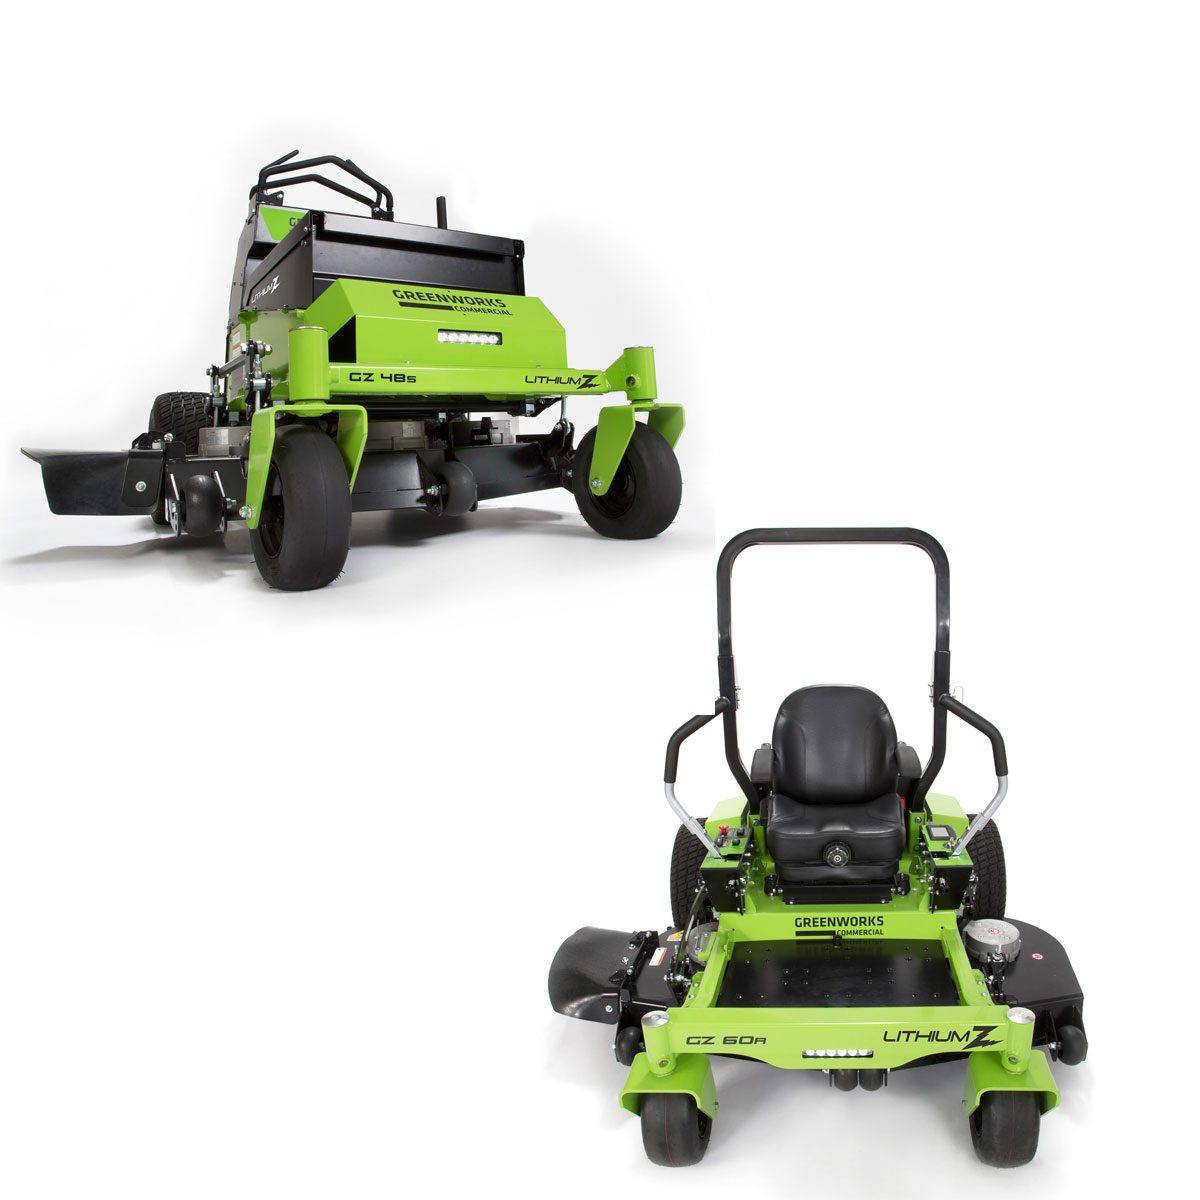 Greenworks Lithium Battery Lawn mowers | Construction Pro Tips